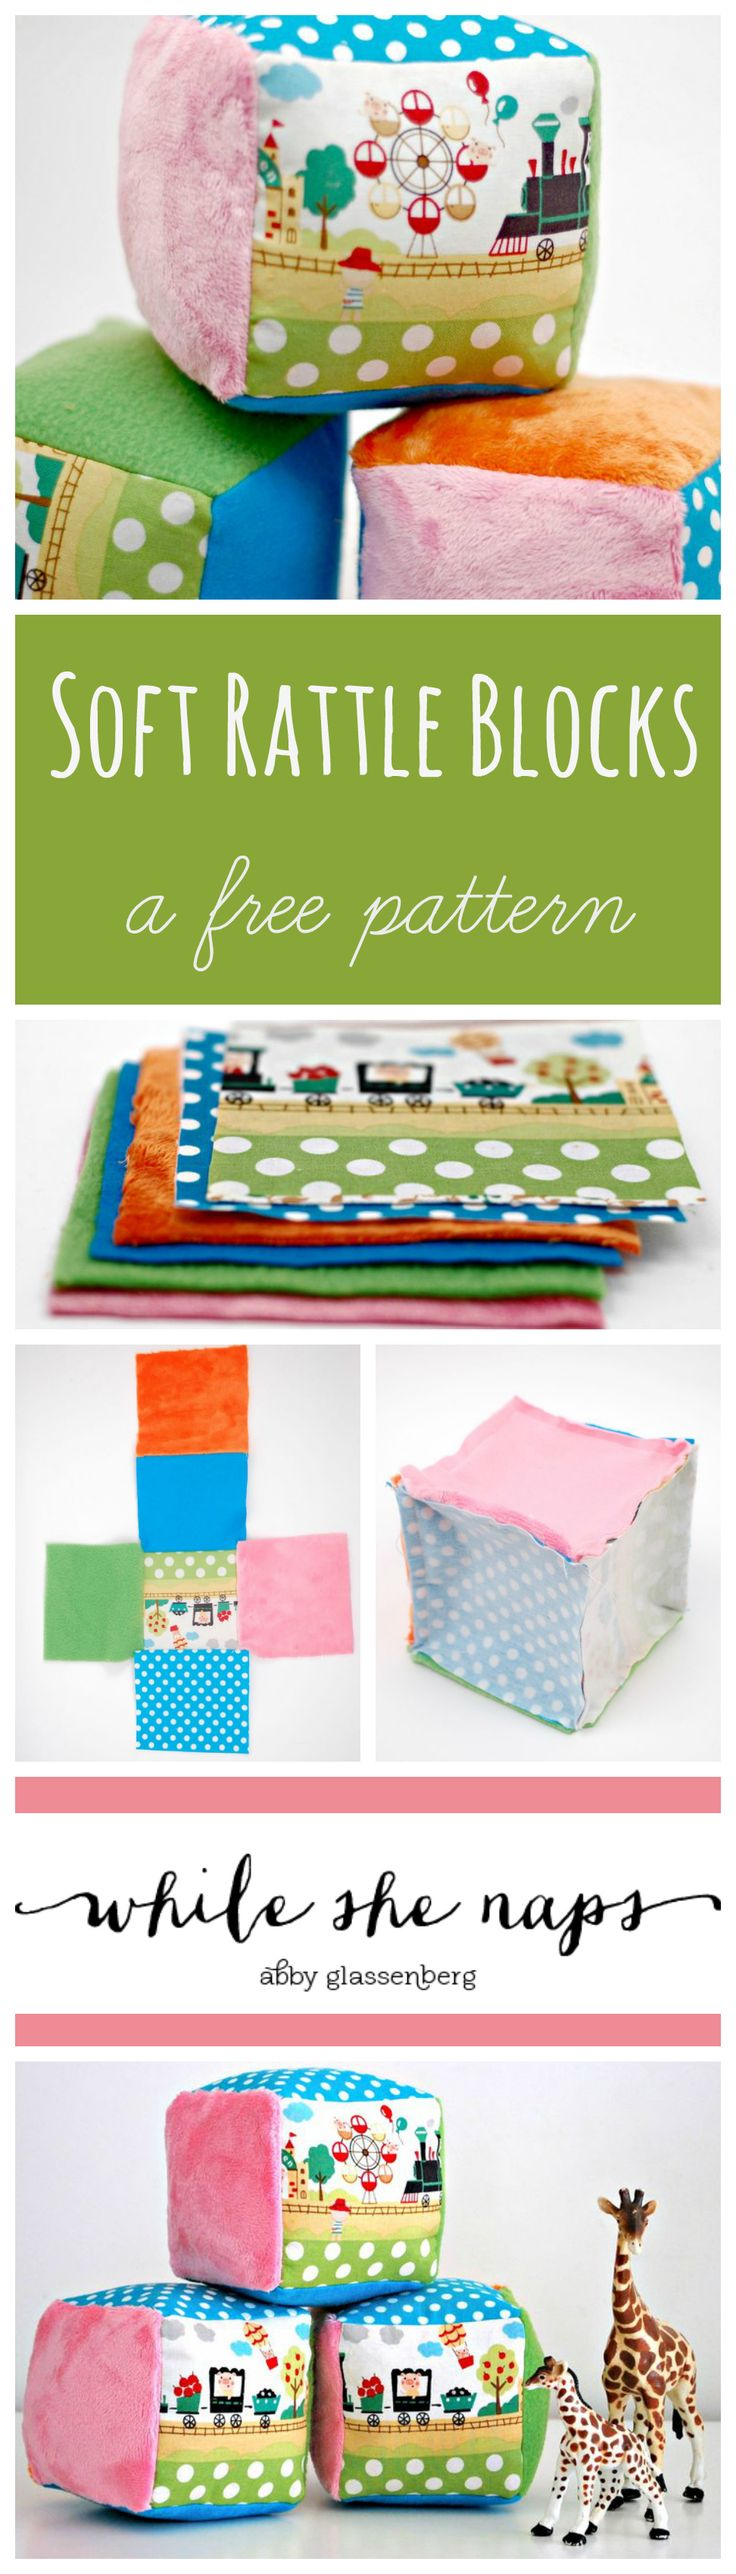 A free pattern for Soft Rattle Blocks.                                                                                                                                                      More